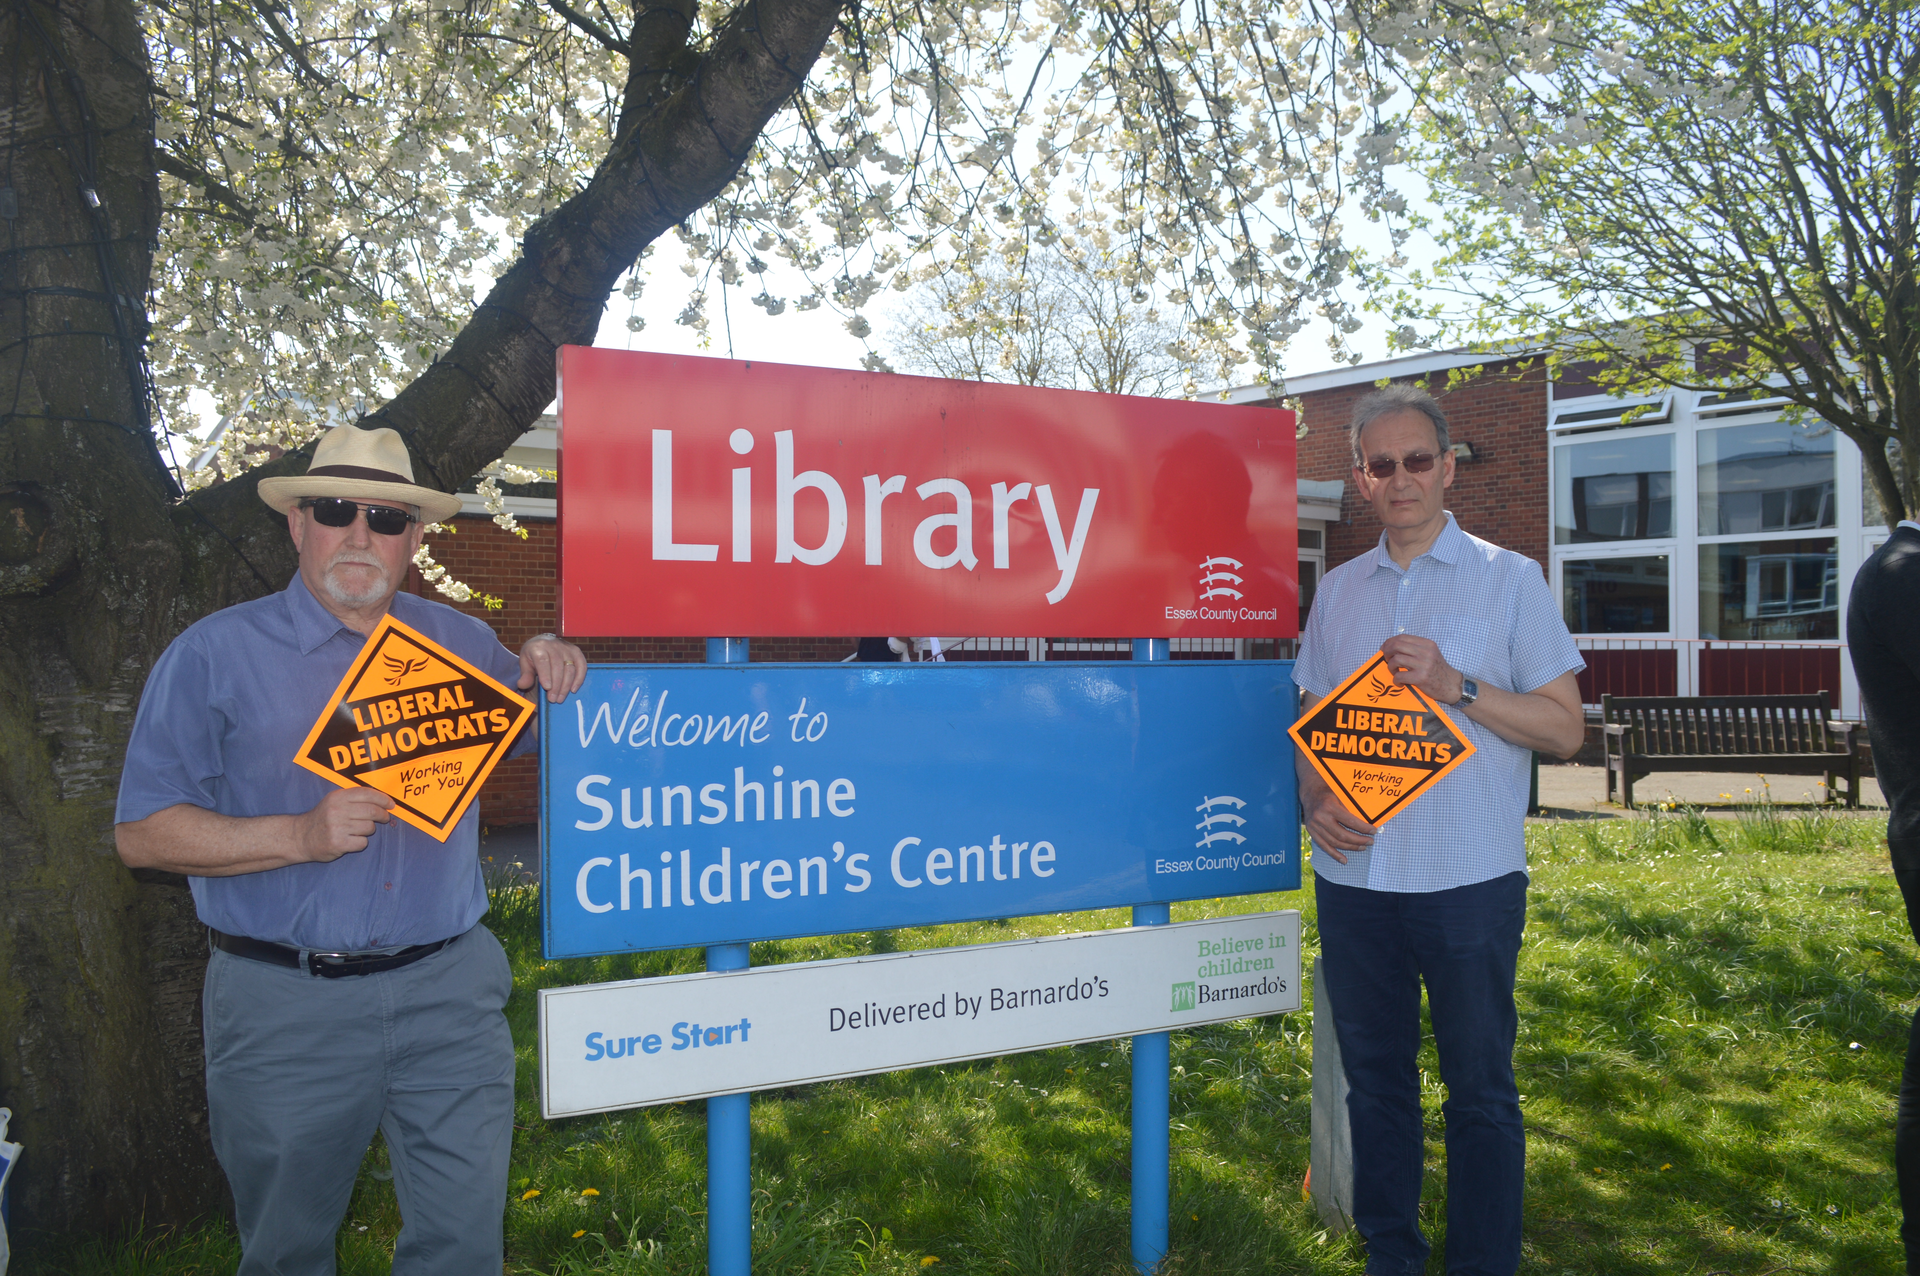 Andy Fryd and Darryl Sankey at Shenfield Library (Karen Chilvers)